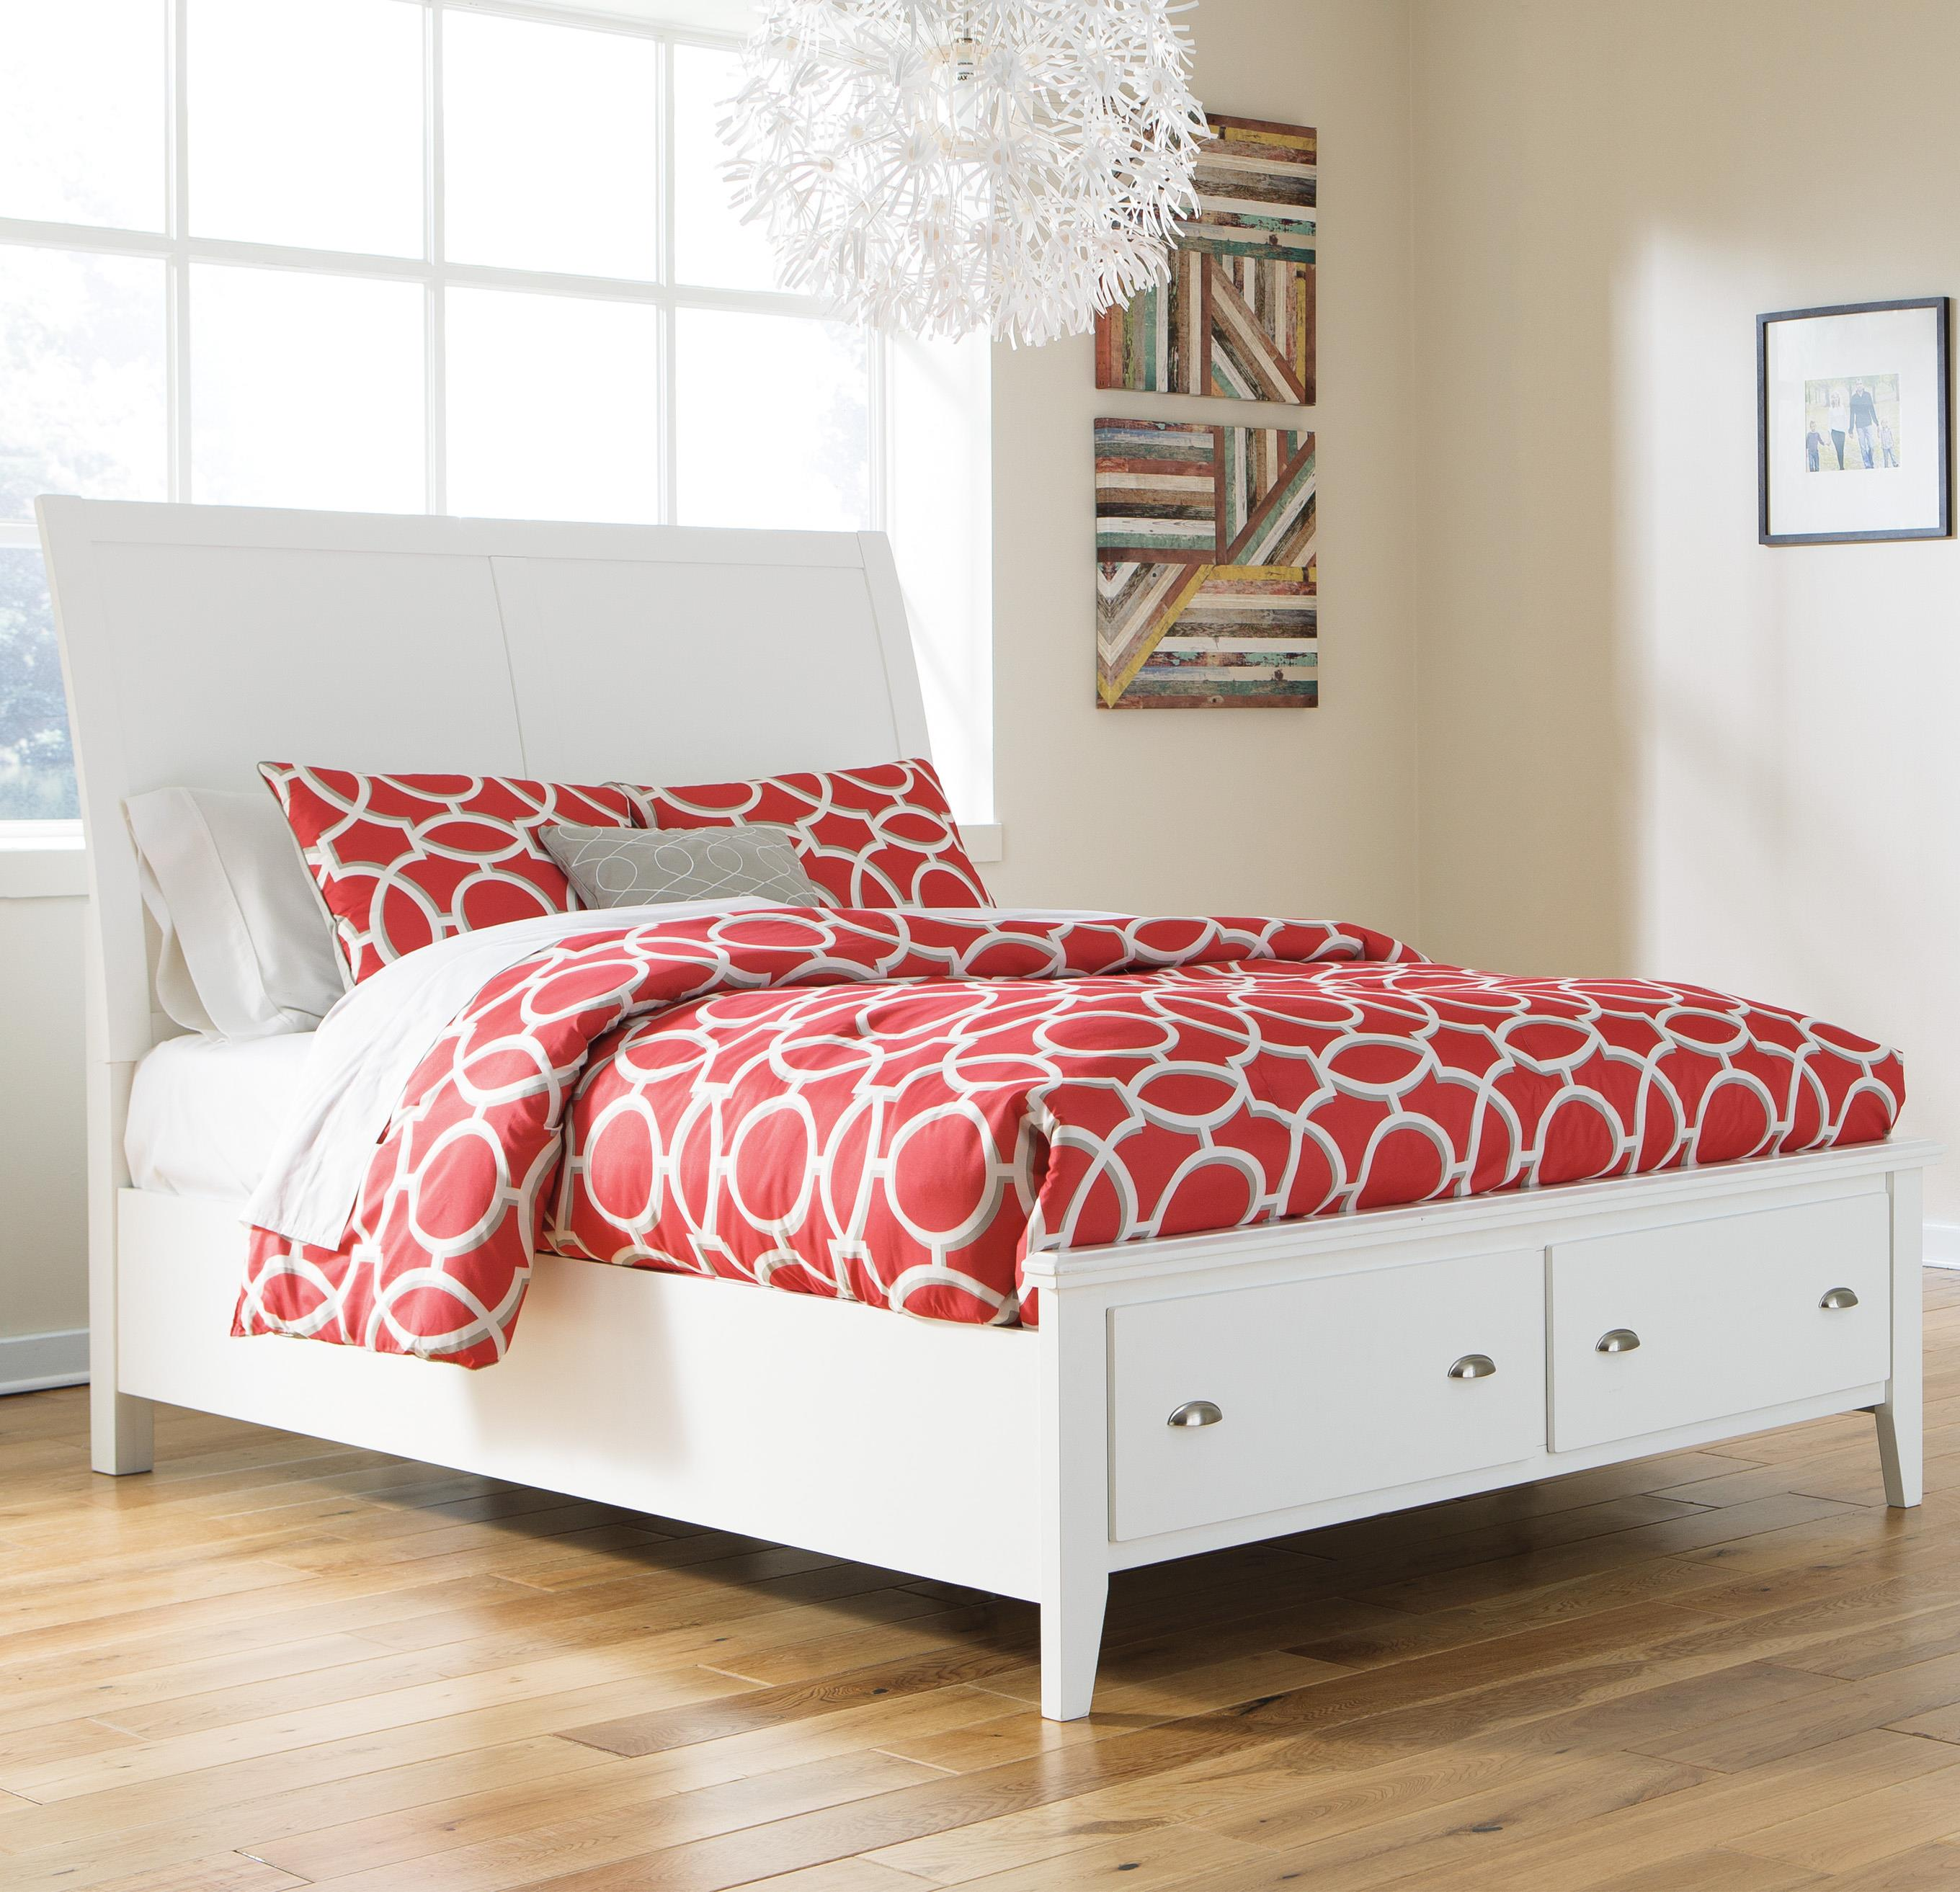 Signature Design by Ashley Langlor Queen Storage Bed with Sleigh Headboard - Item Number: B592-57+54S+96S